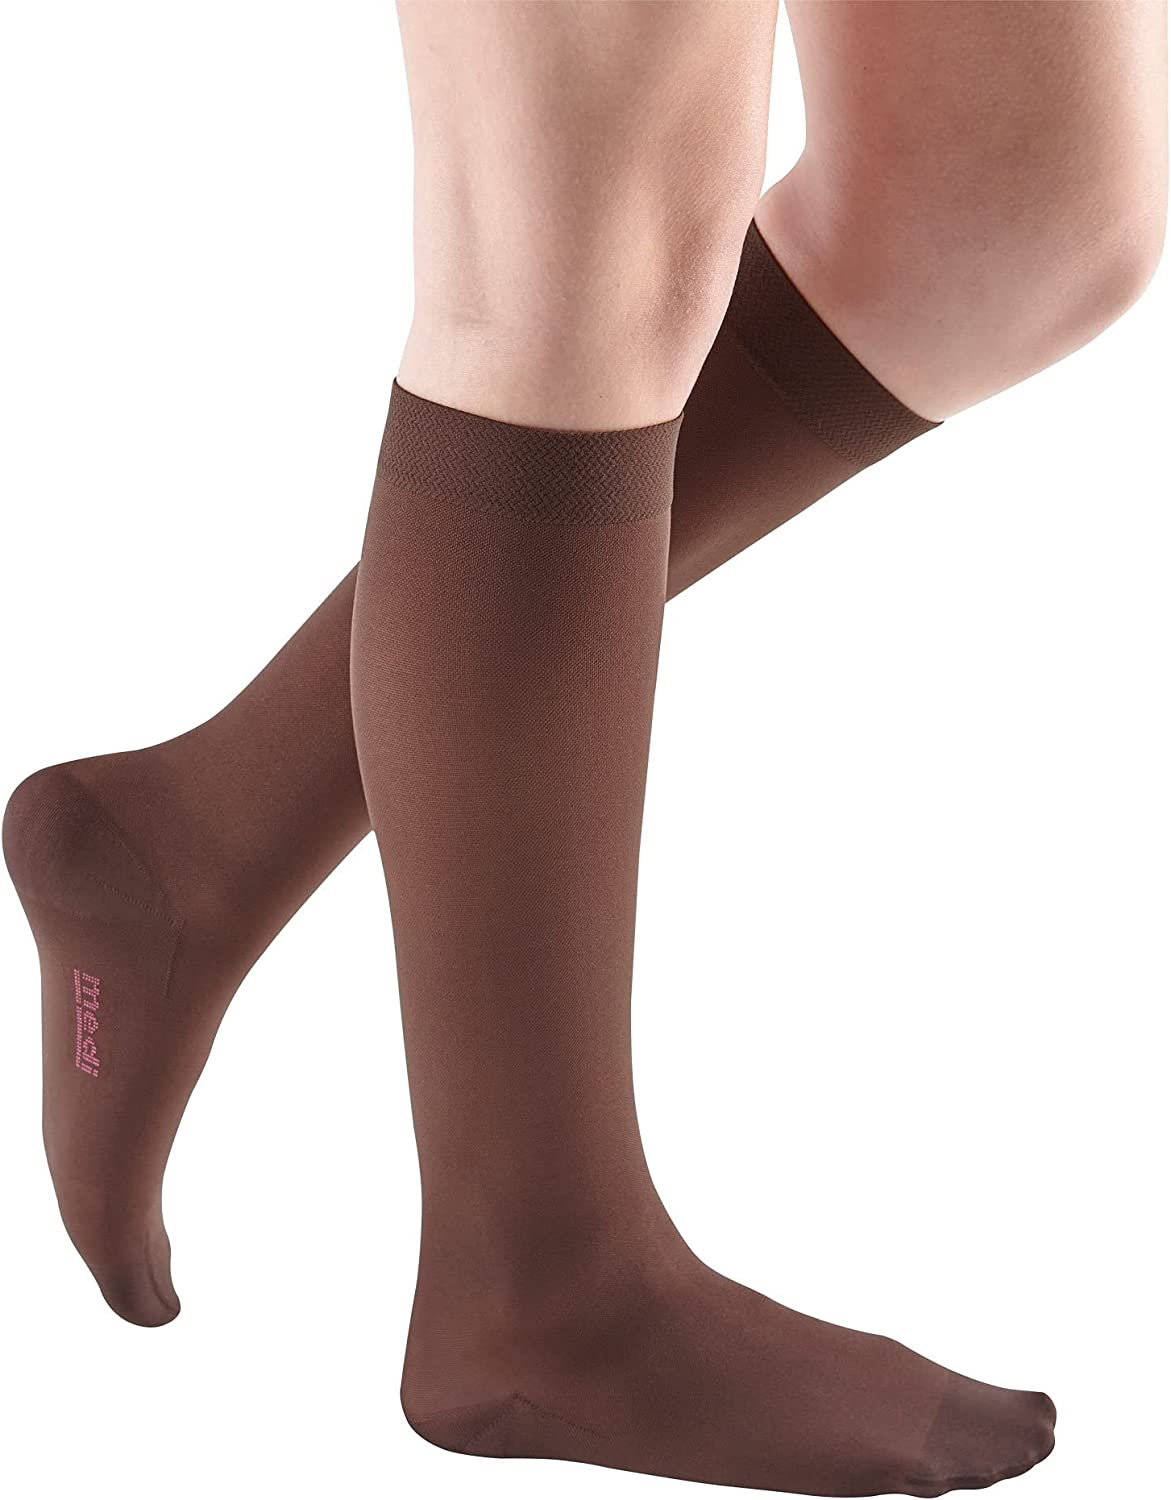 mediven Comfort for Women 20-30 mmHg Toe C Closed - Sales results No. 1 Choice High Calf